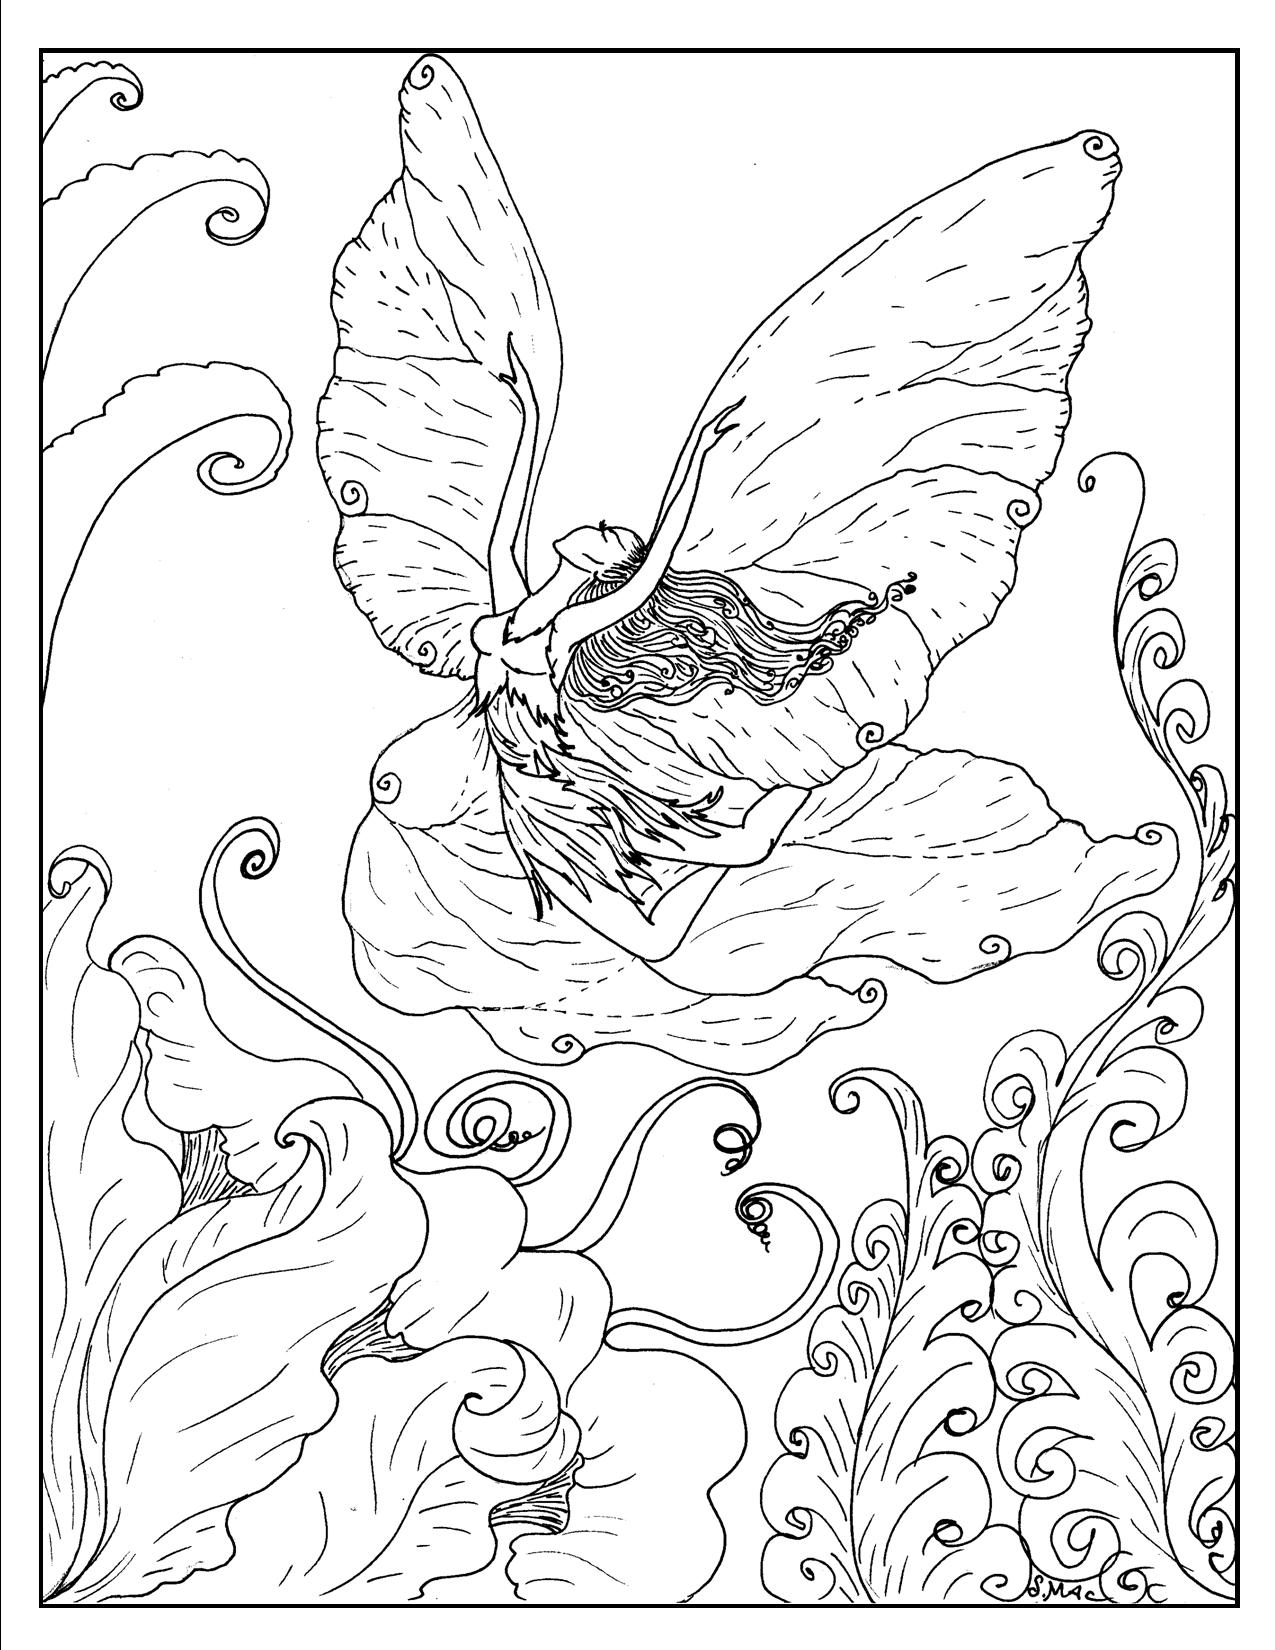 Free Adult Coloring Pages – S.Mac's Place To Be